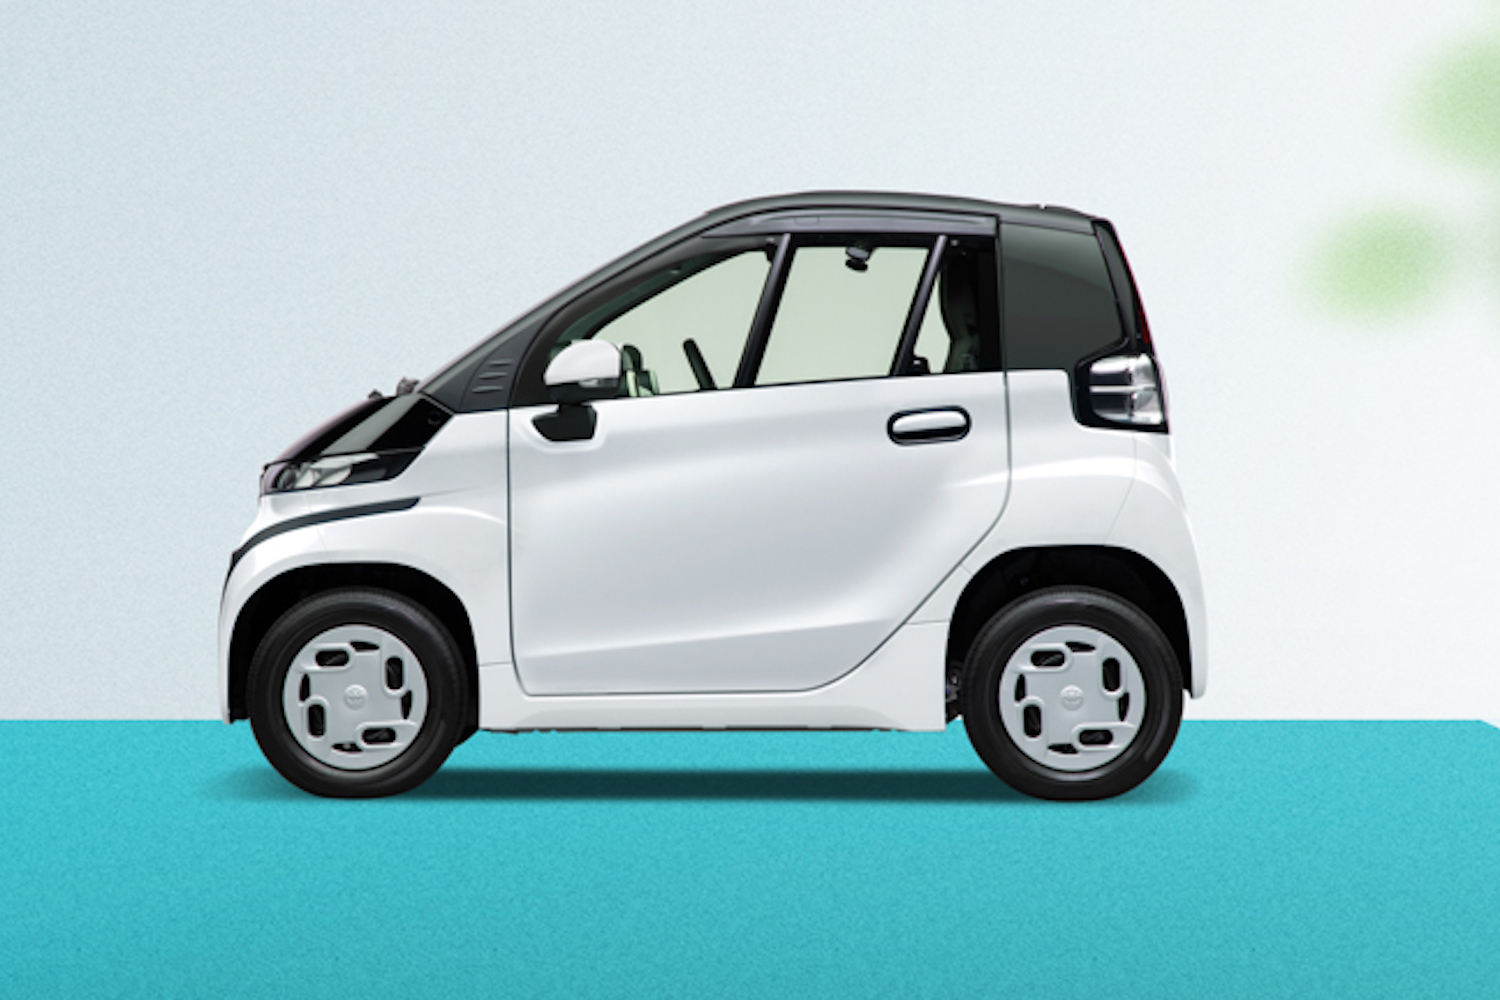 Car News | Toyota launches C+Pod electric car | CompleteCar.ie